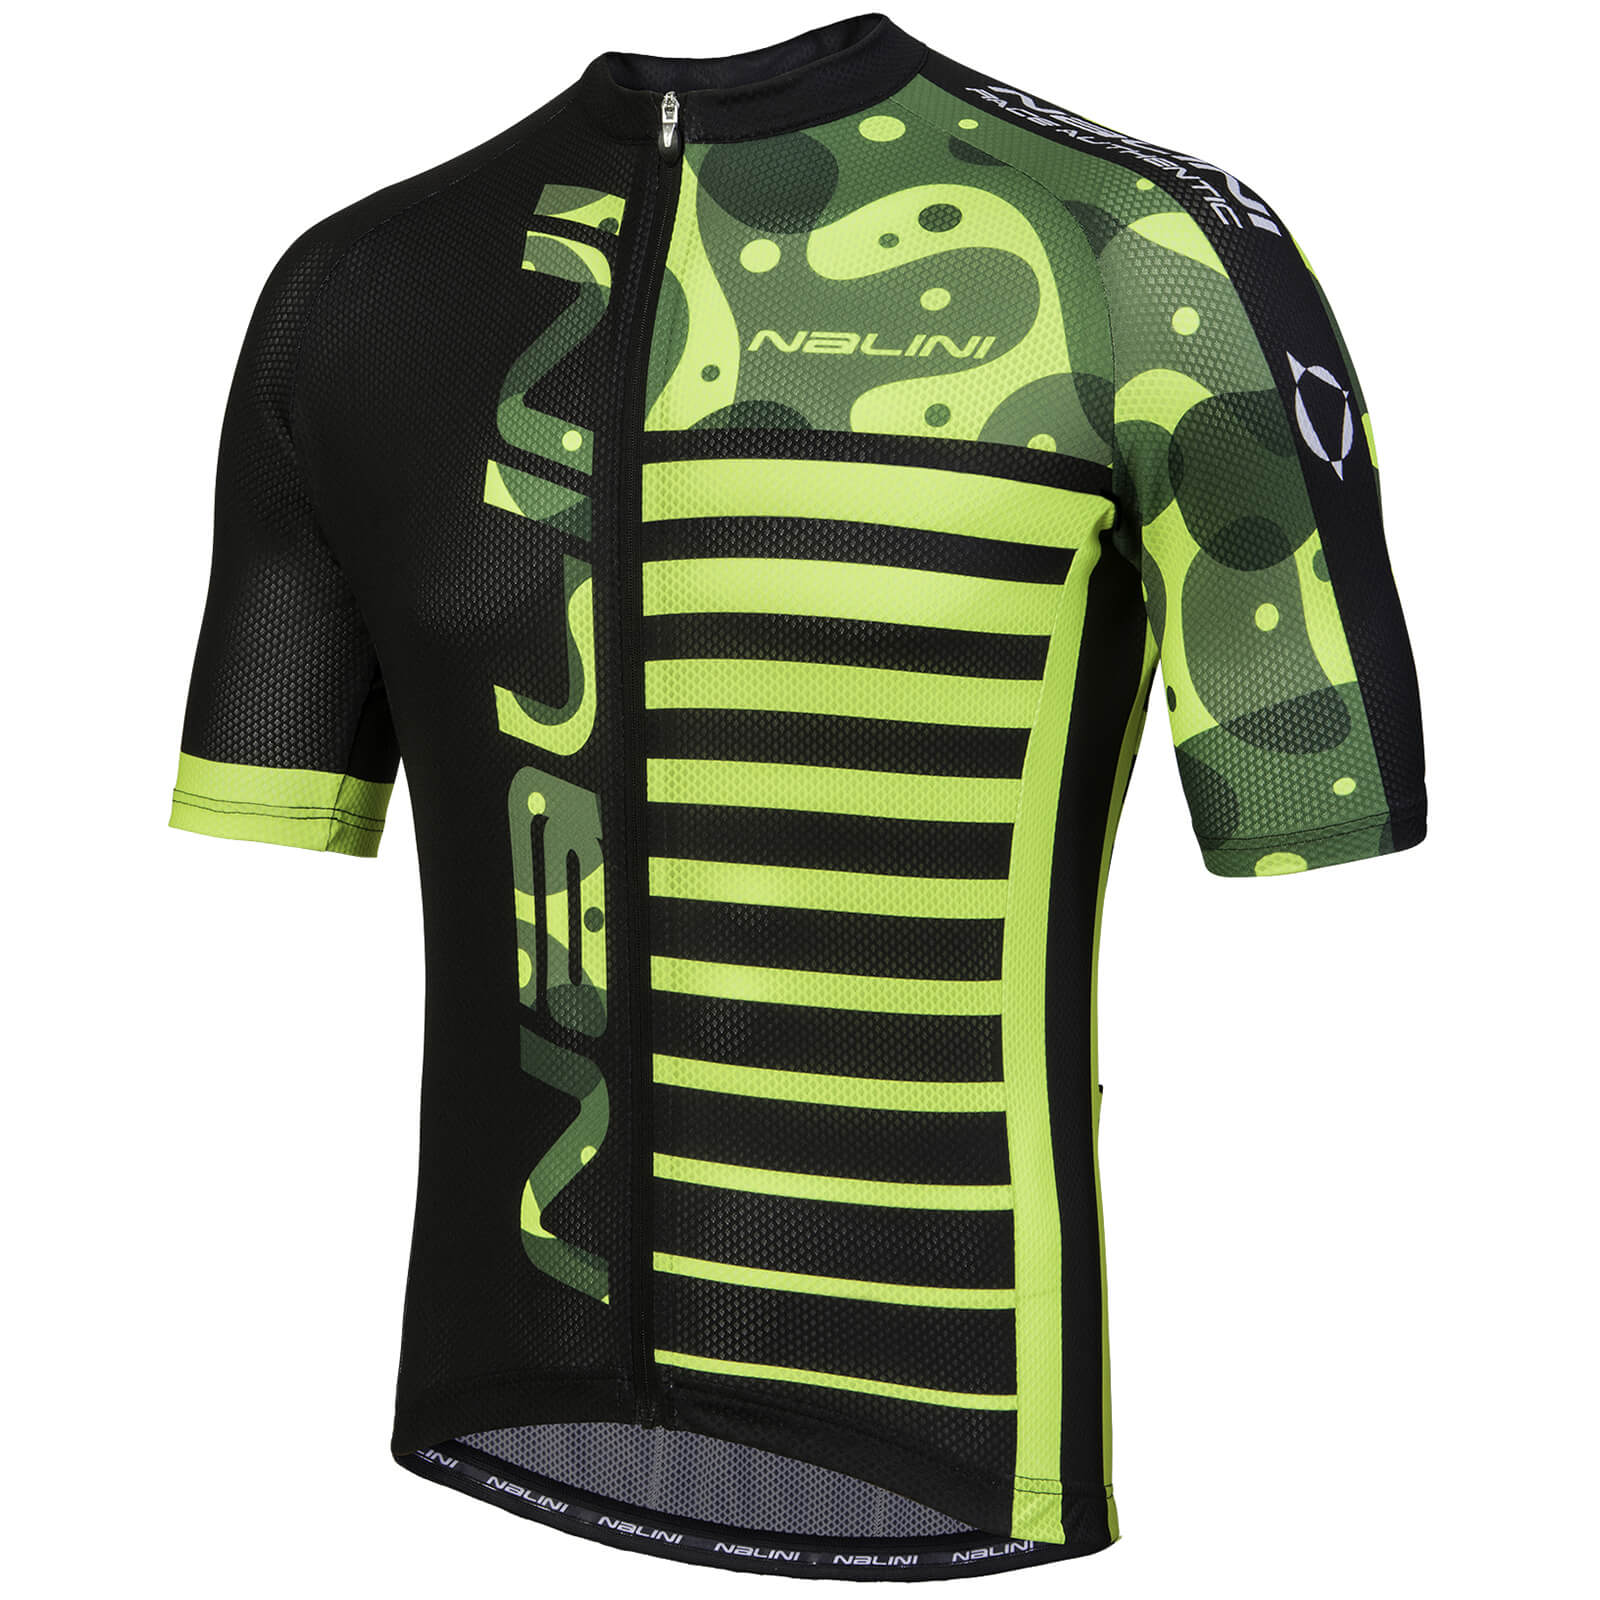 Nalini Cross Short Sleeve Jersey - Black/Fluro/Green